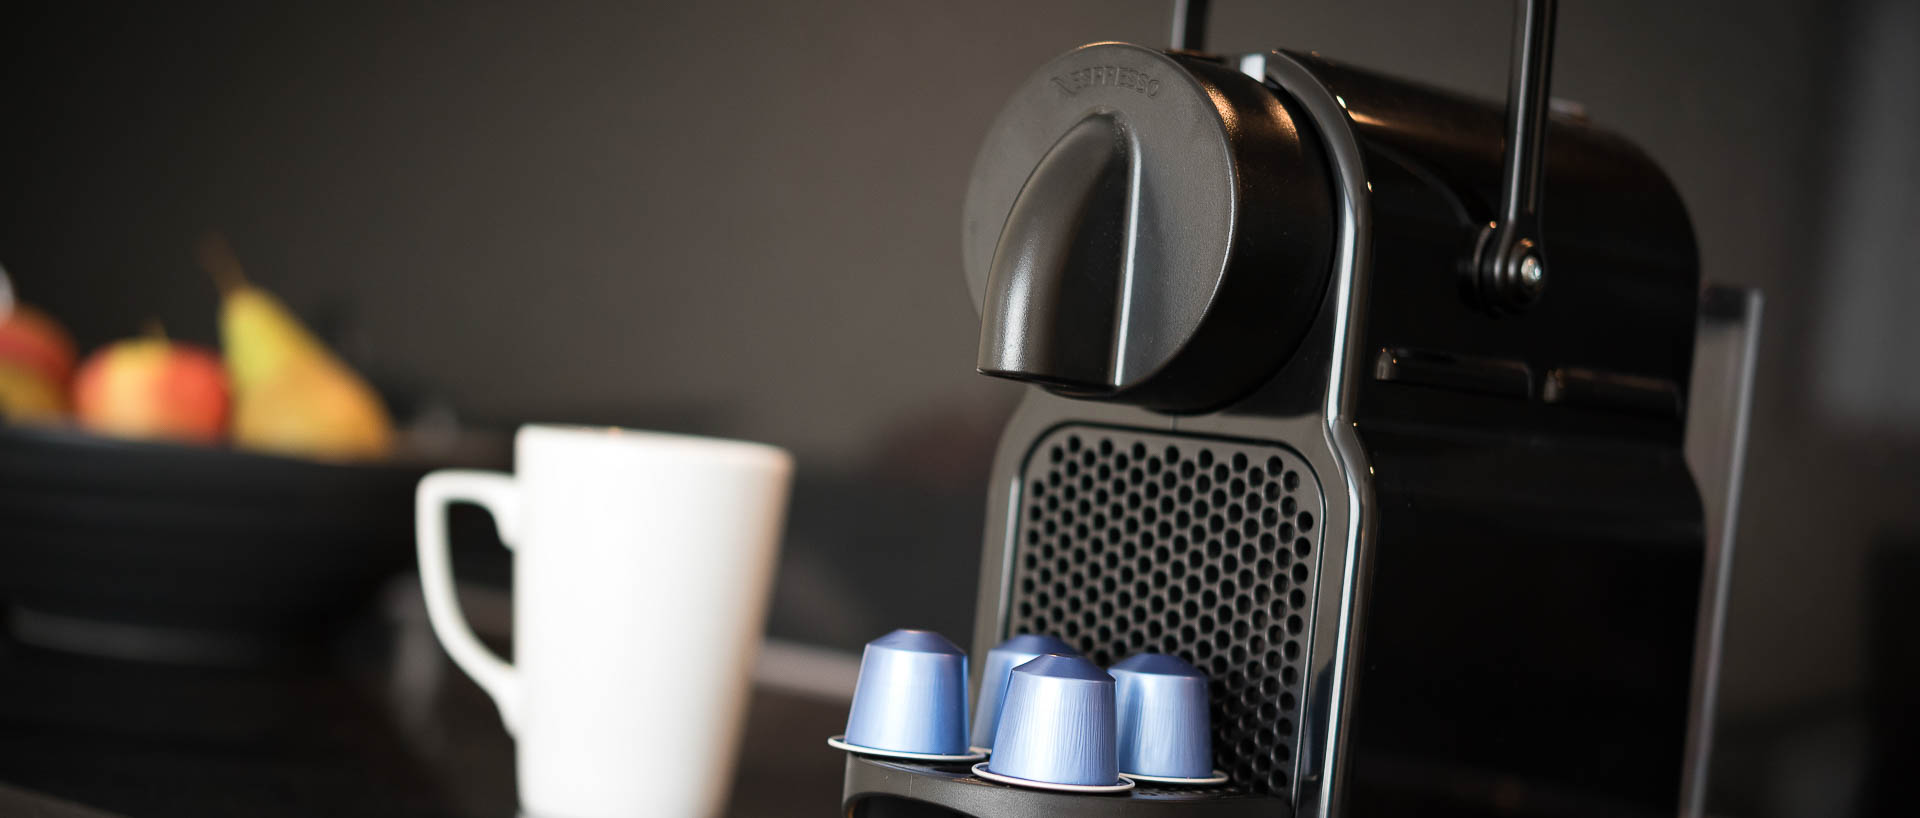 Nespresso Coffee Machine inPREMIER SUITES PLUS Antwerp